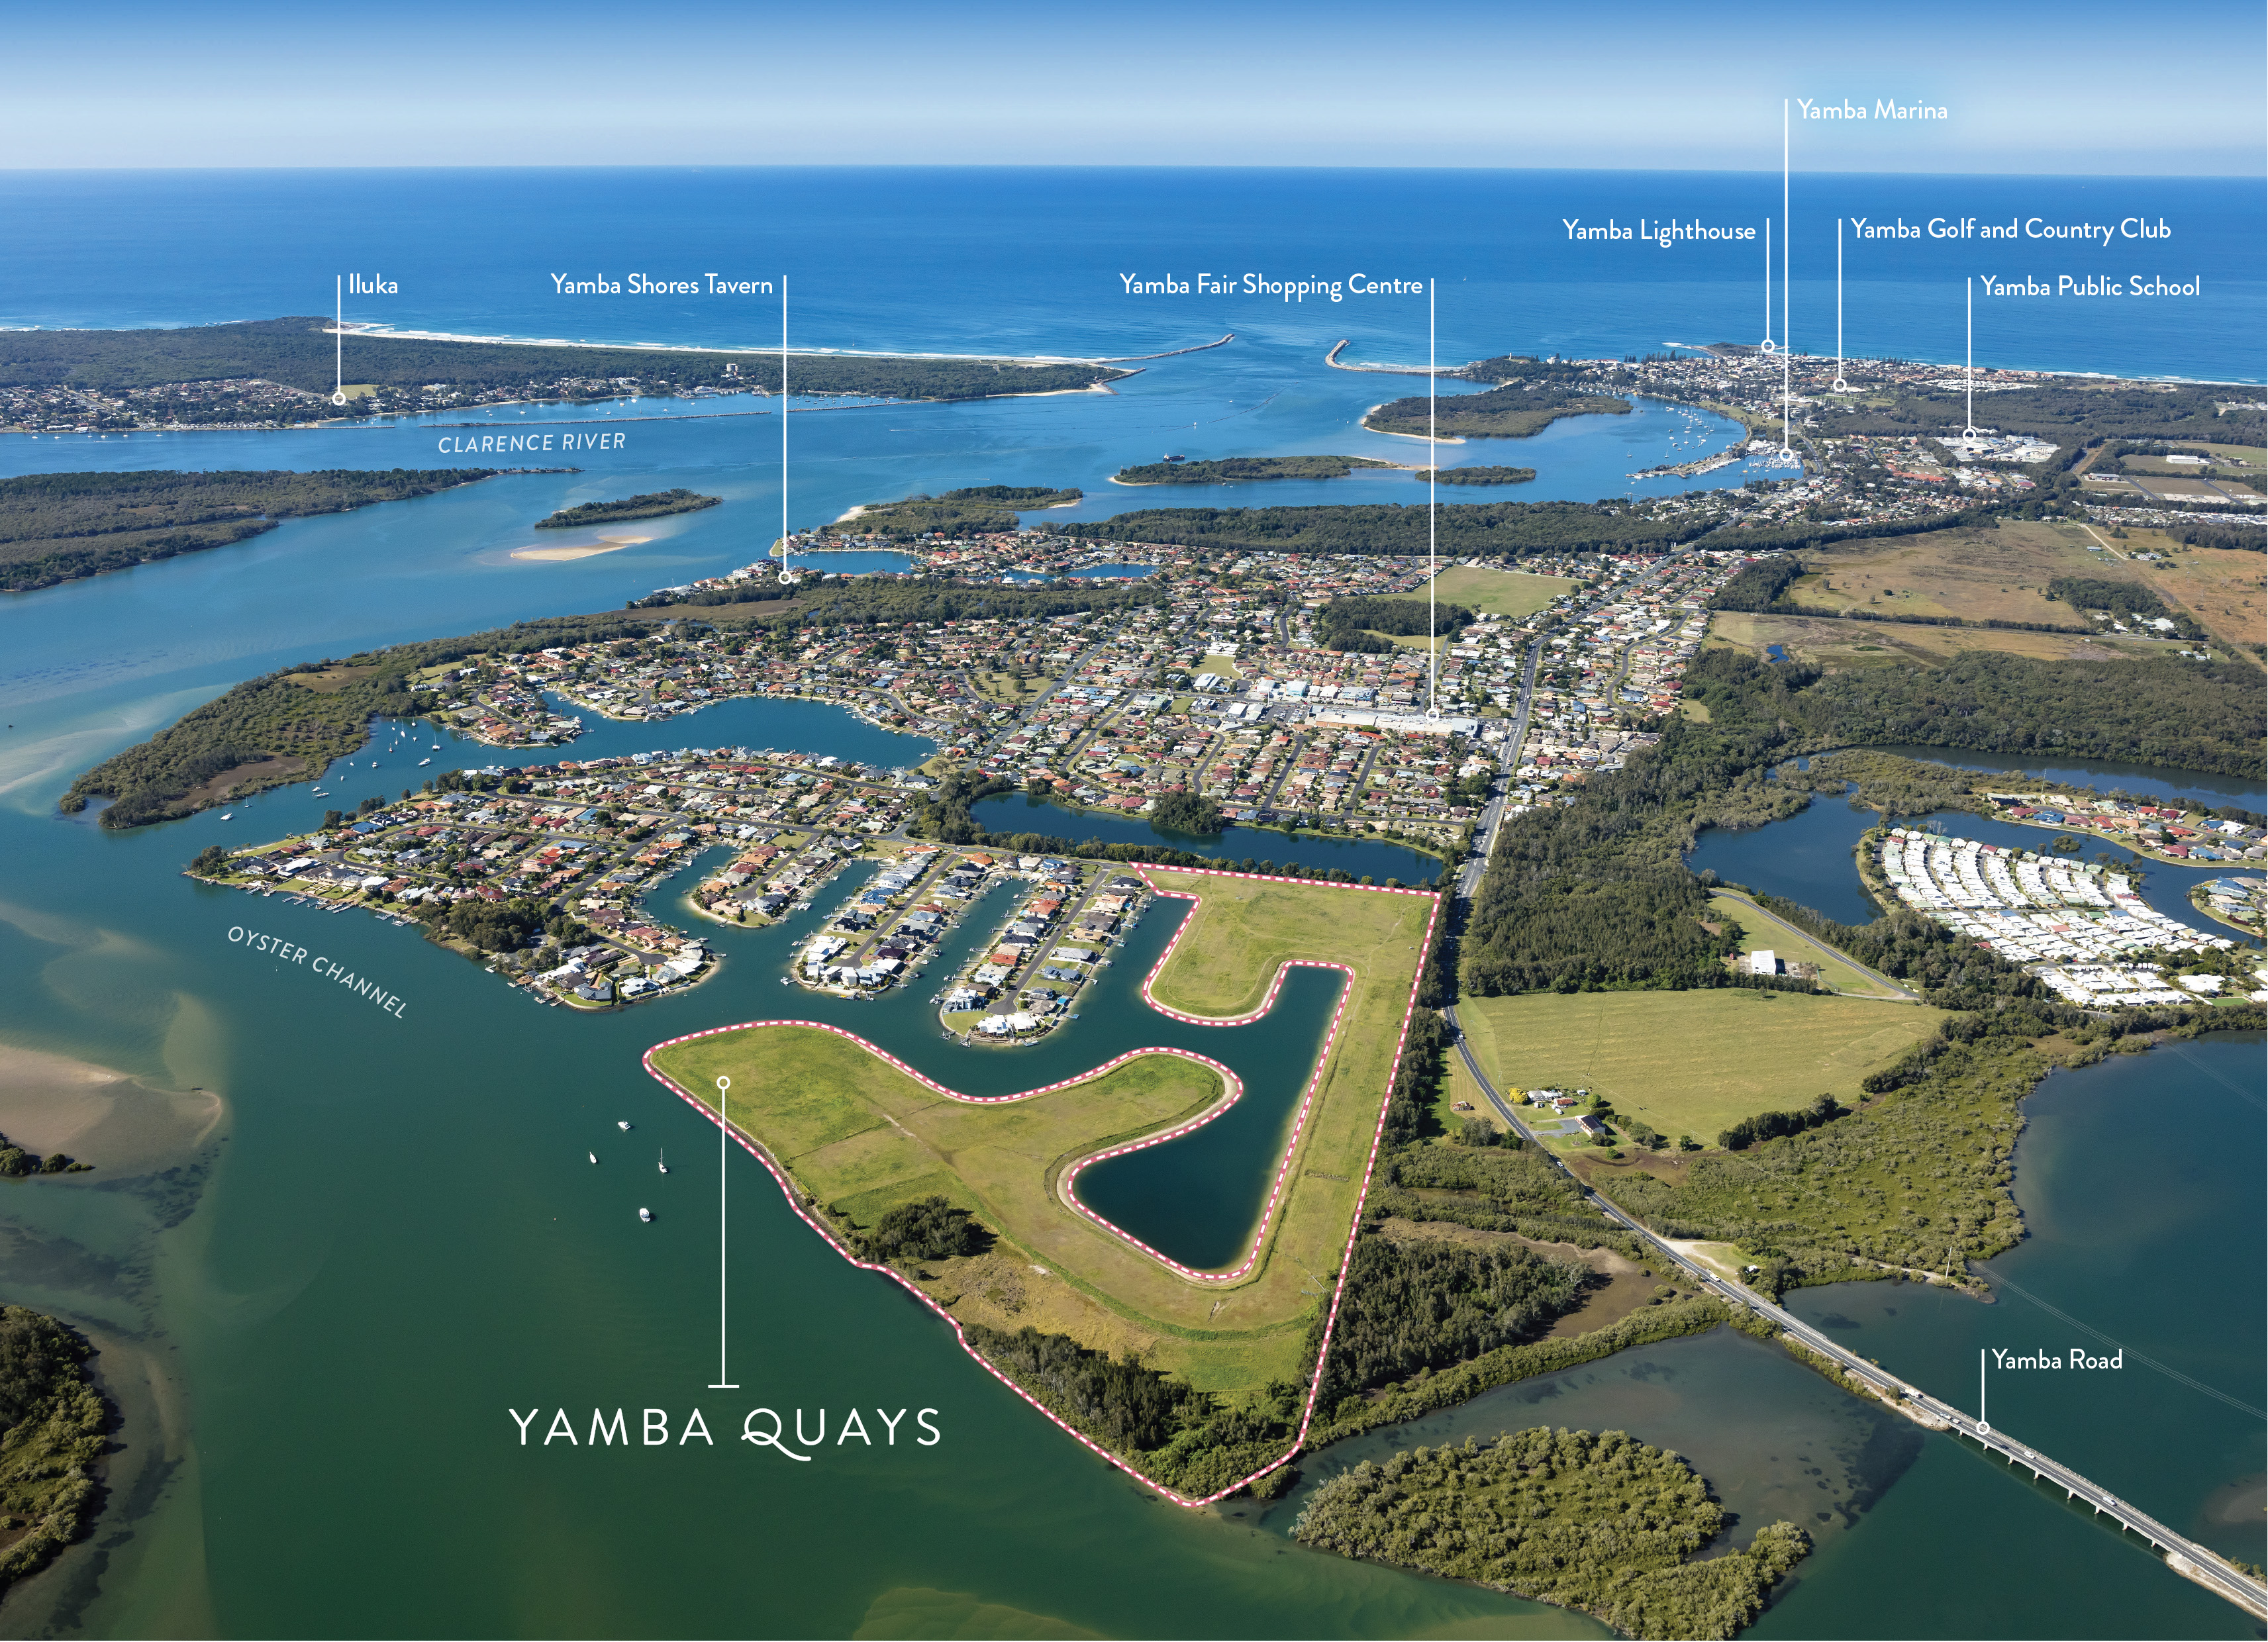 Yamba Quays marked location aerial